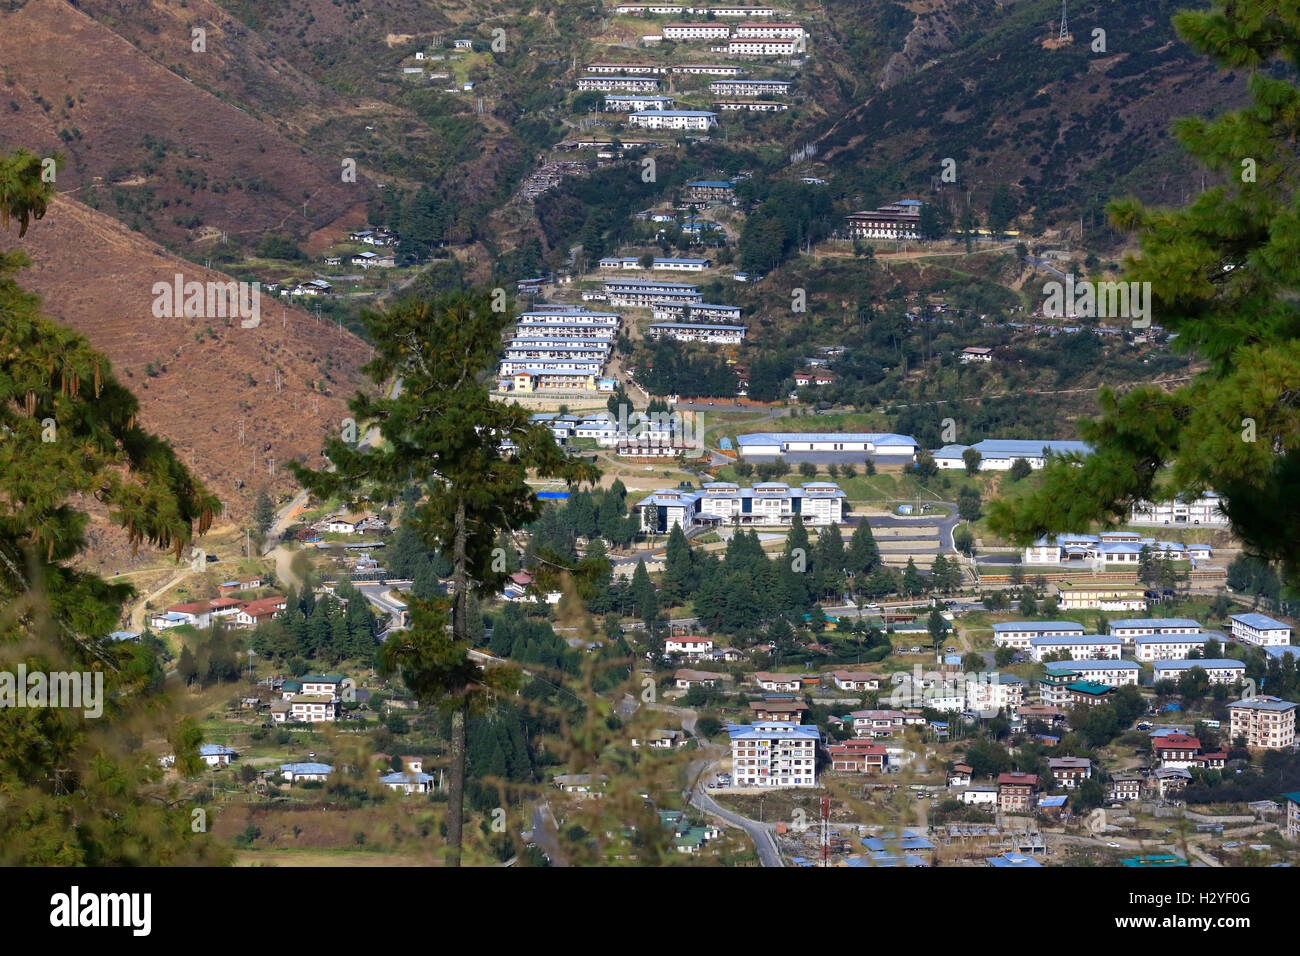 A general view of Thimphu, the capital city of Kingdom of Bhutan. - Stock Image